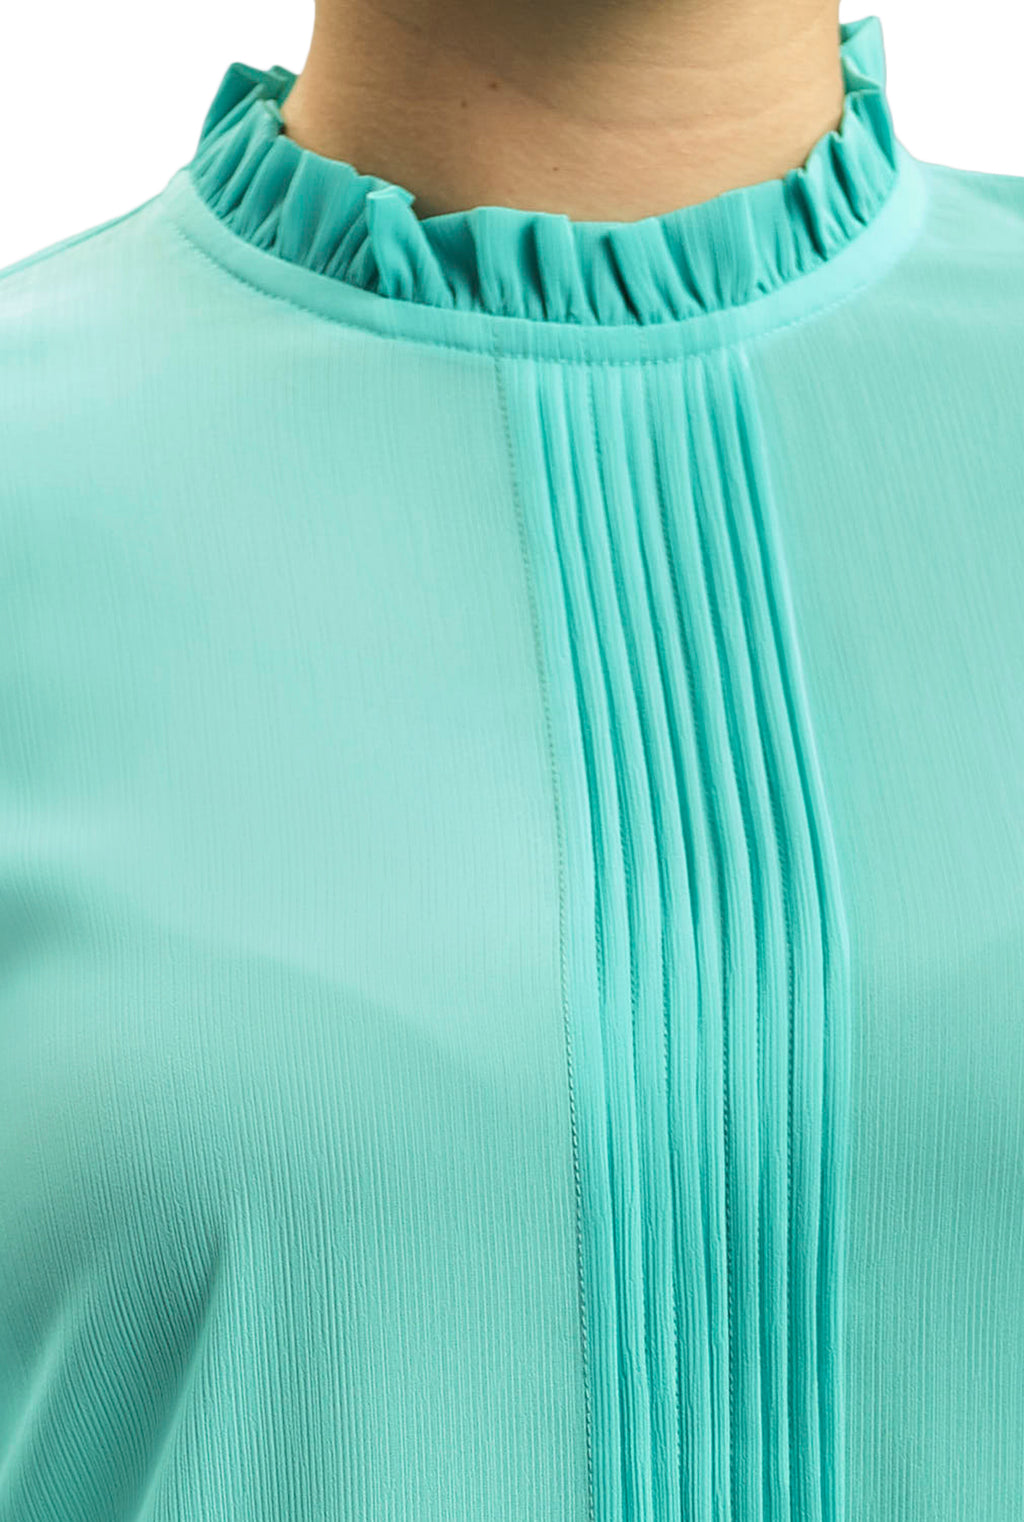 BASIC CRINKLED CREPE CHIFFON BLOUSE WITH AN ELIZABETH BOW COLLAR AND PLEATS FRONT DETAIL